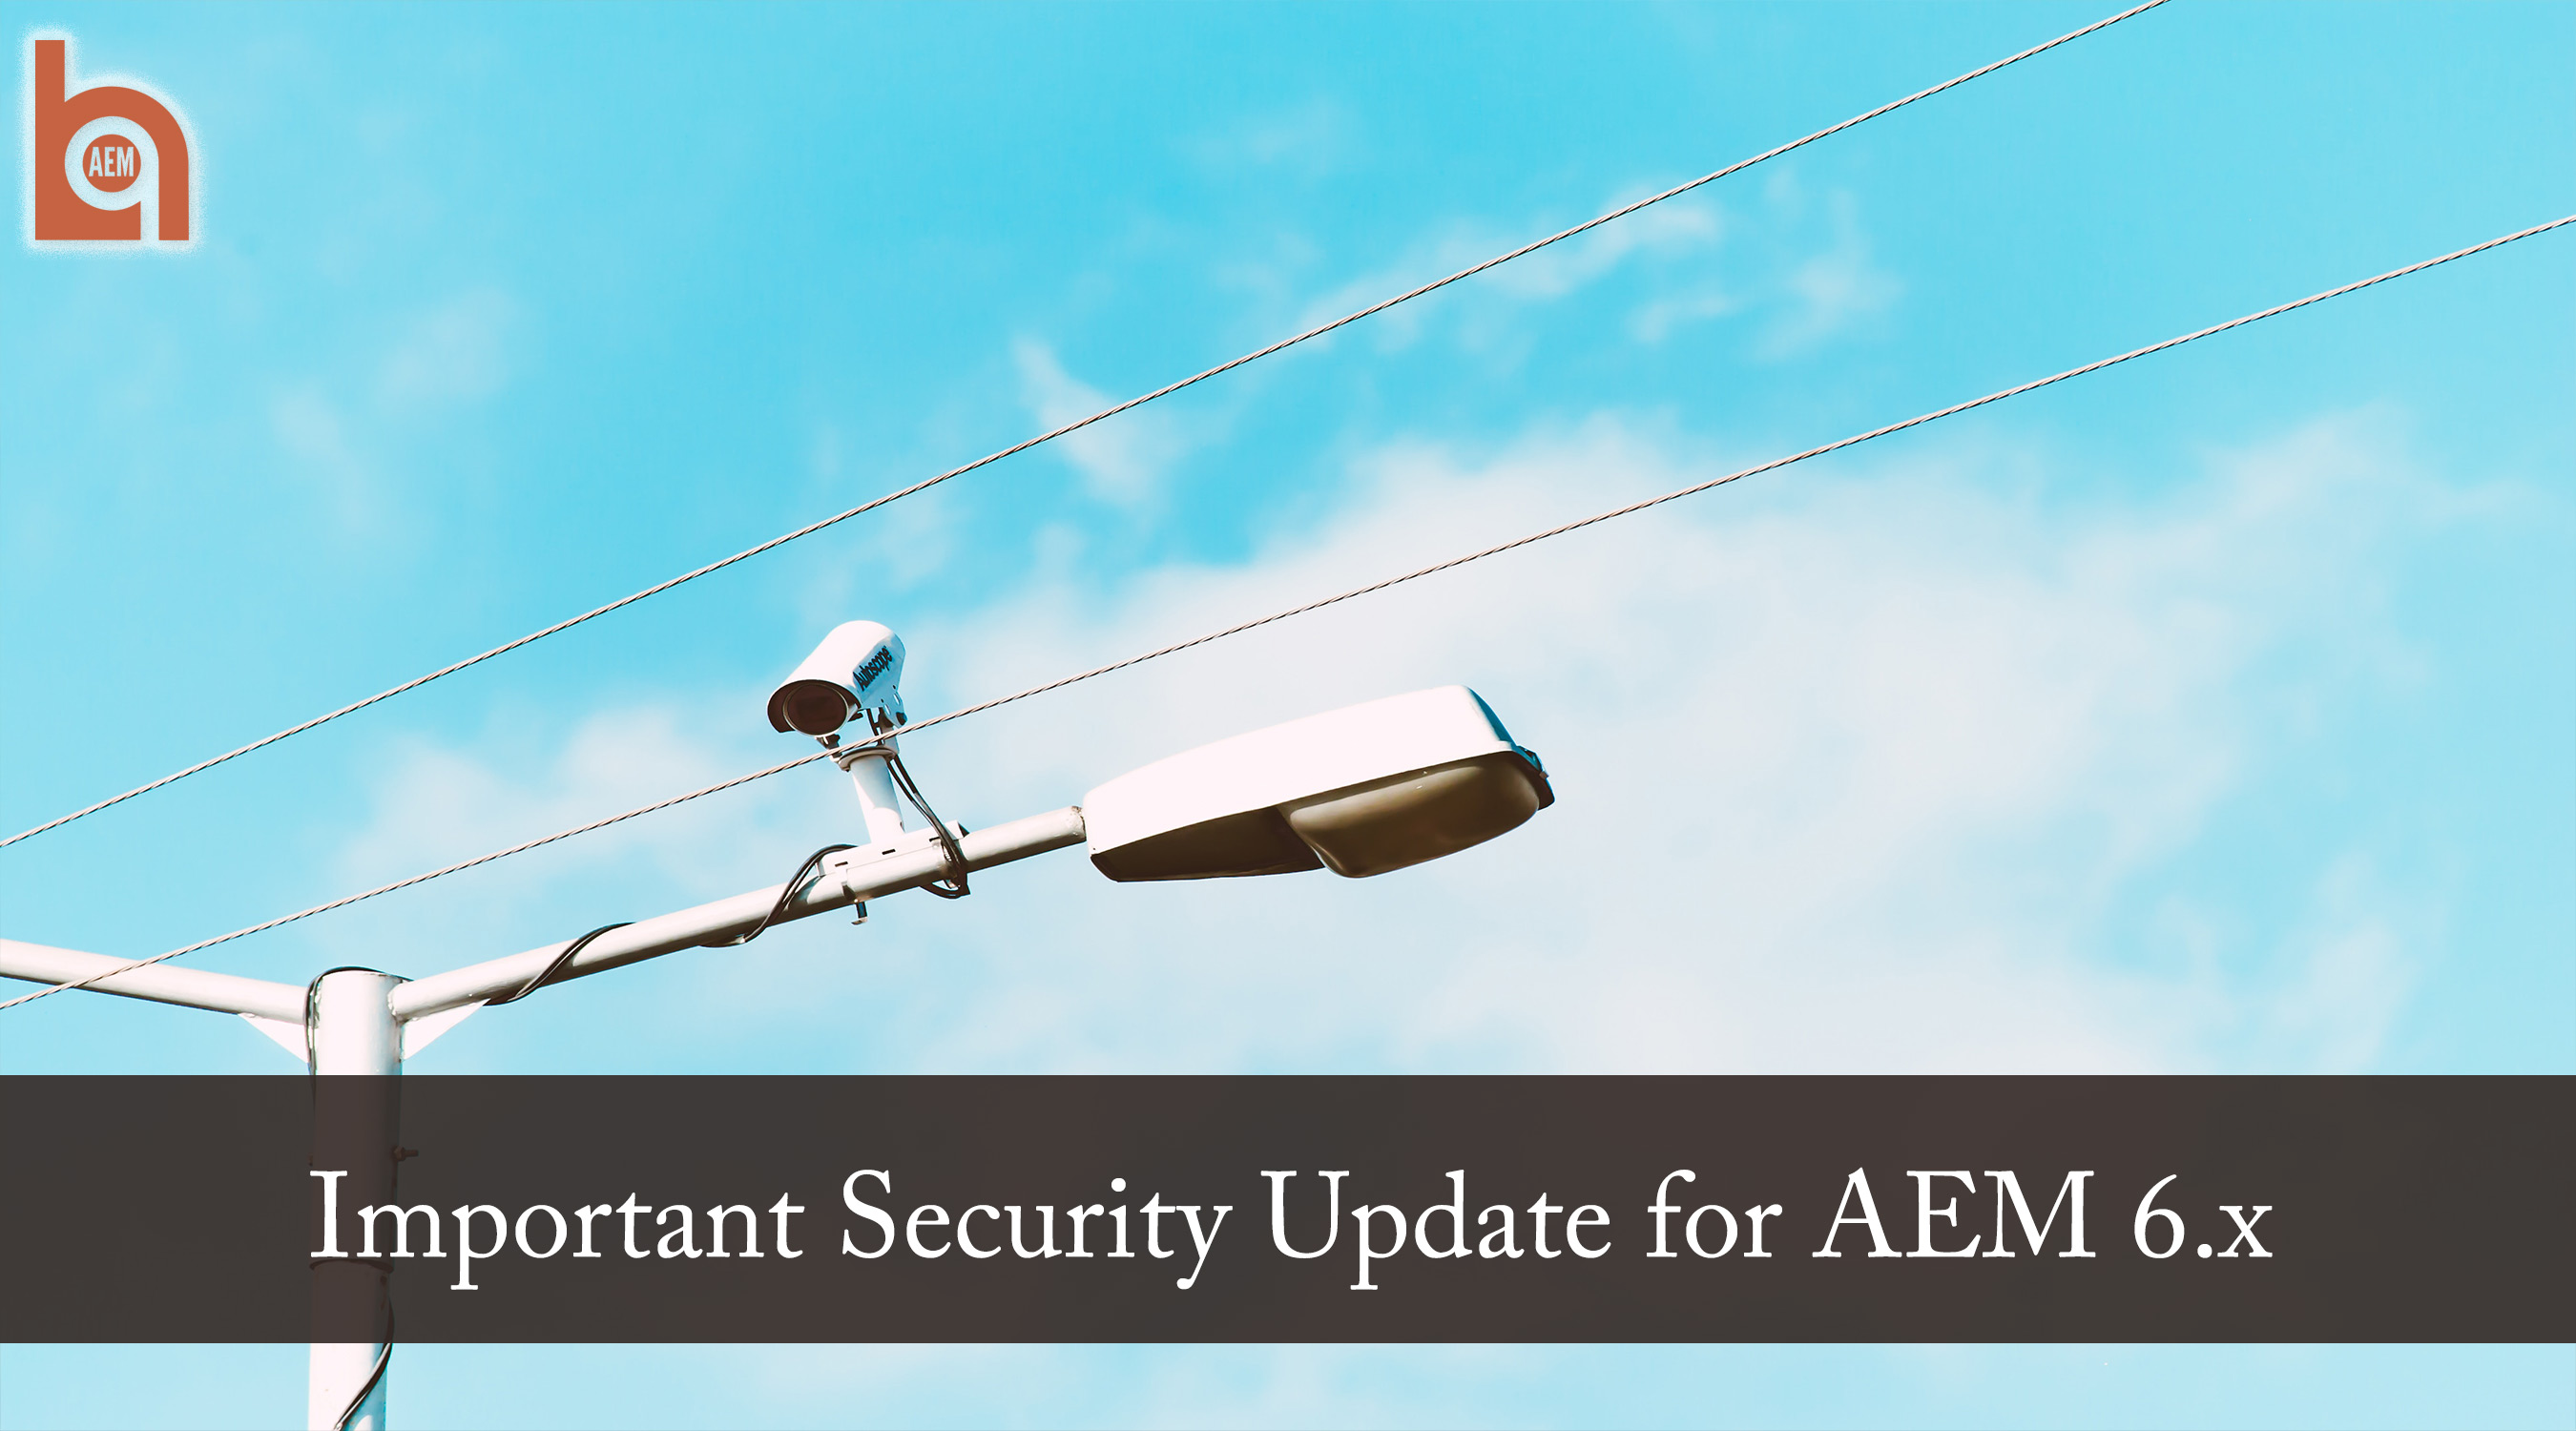 Important Security Updates for AEM 6.x